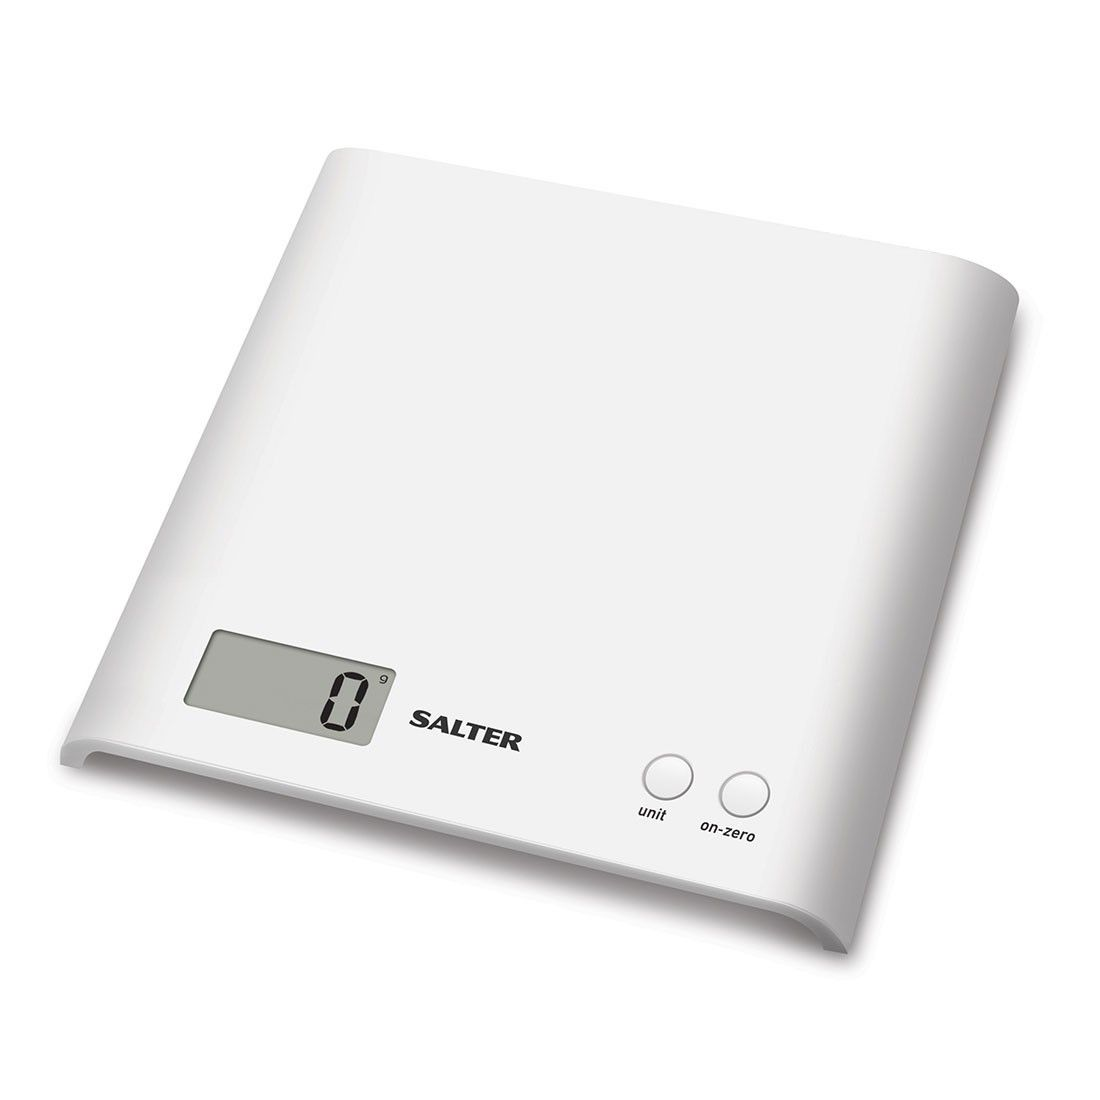 Salter ARC Electronic Digital Kitchen Scales - White | Kitchen ...